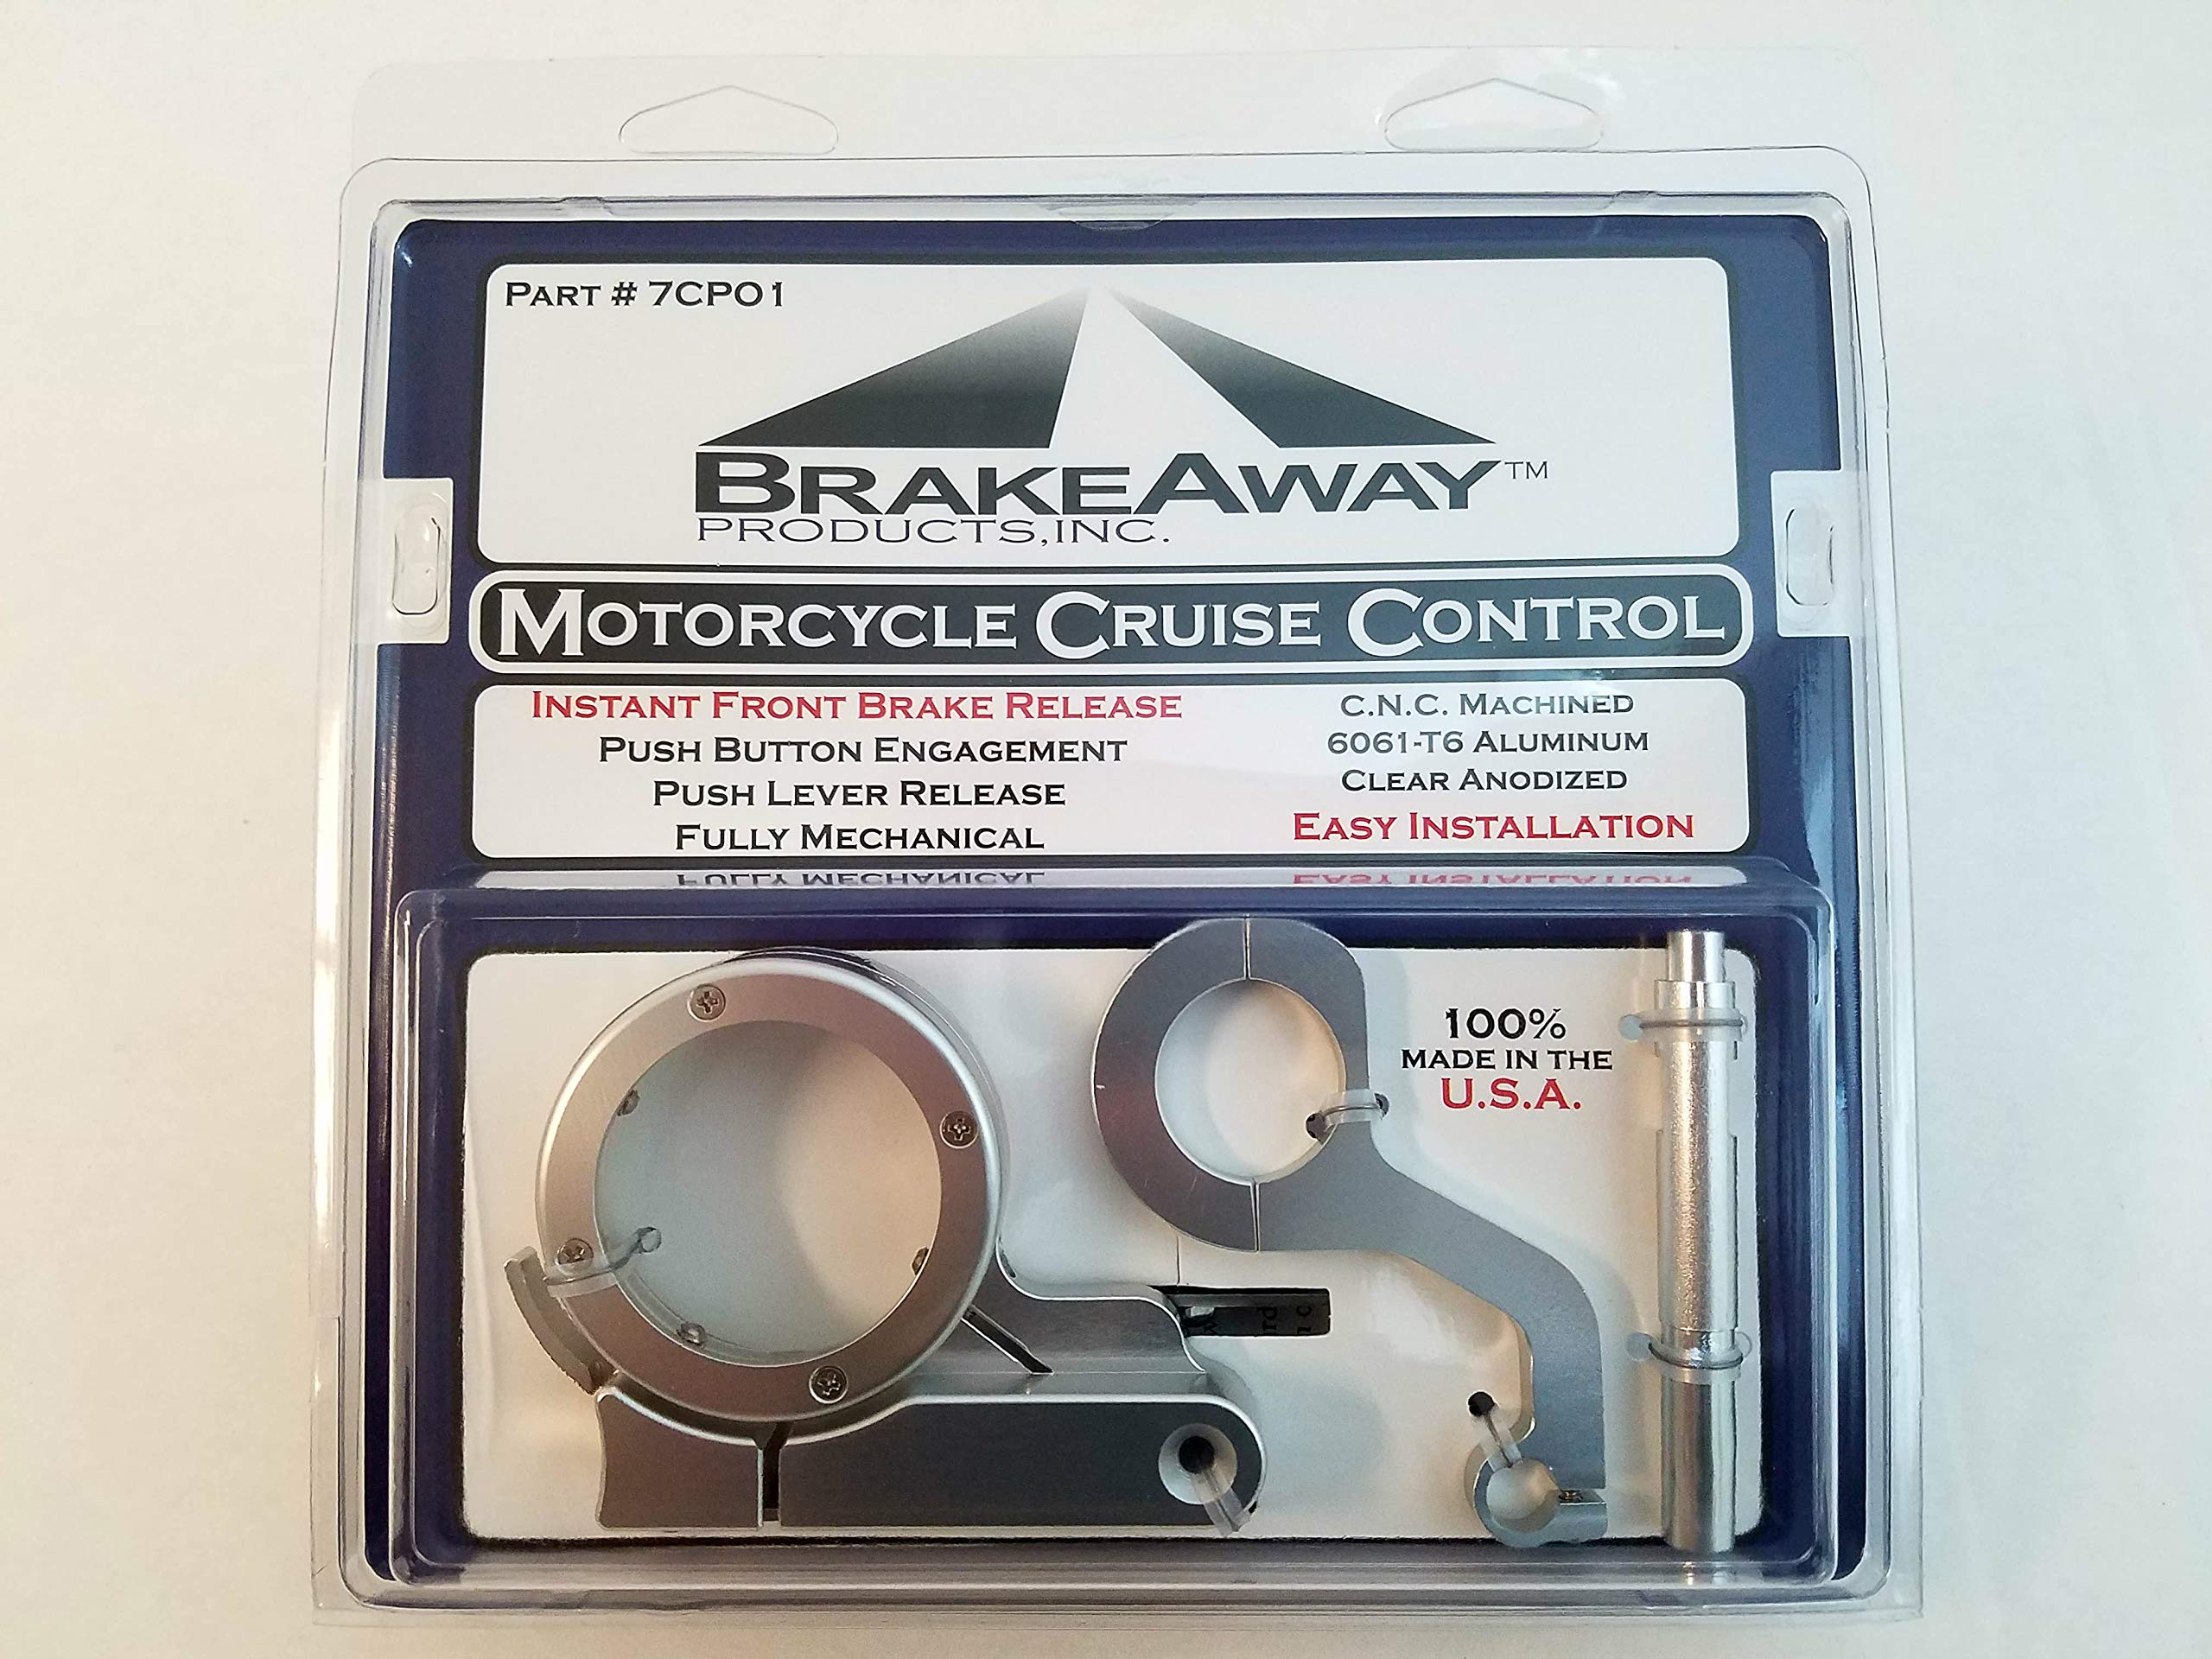 7CP01 BrakeAway Motorcycle Cruise Control Throttle For Metric Cruisers